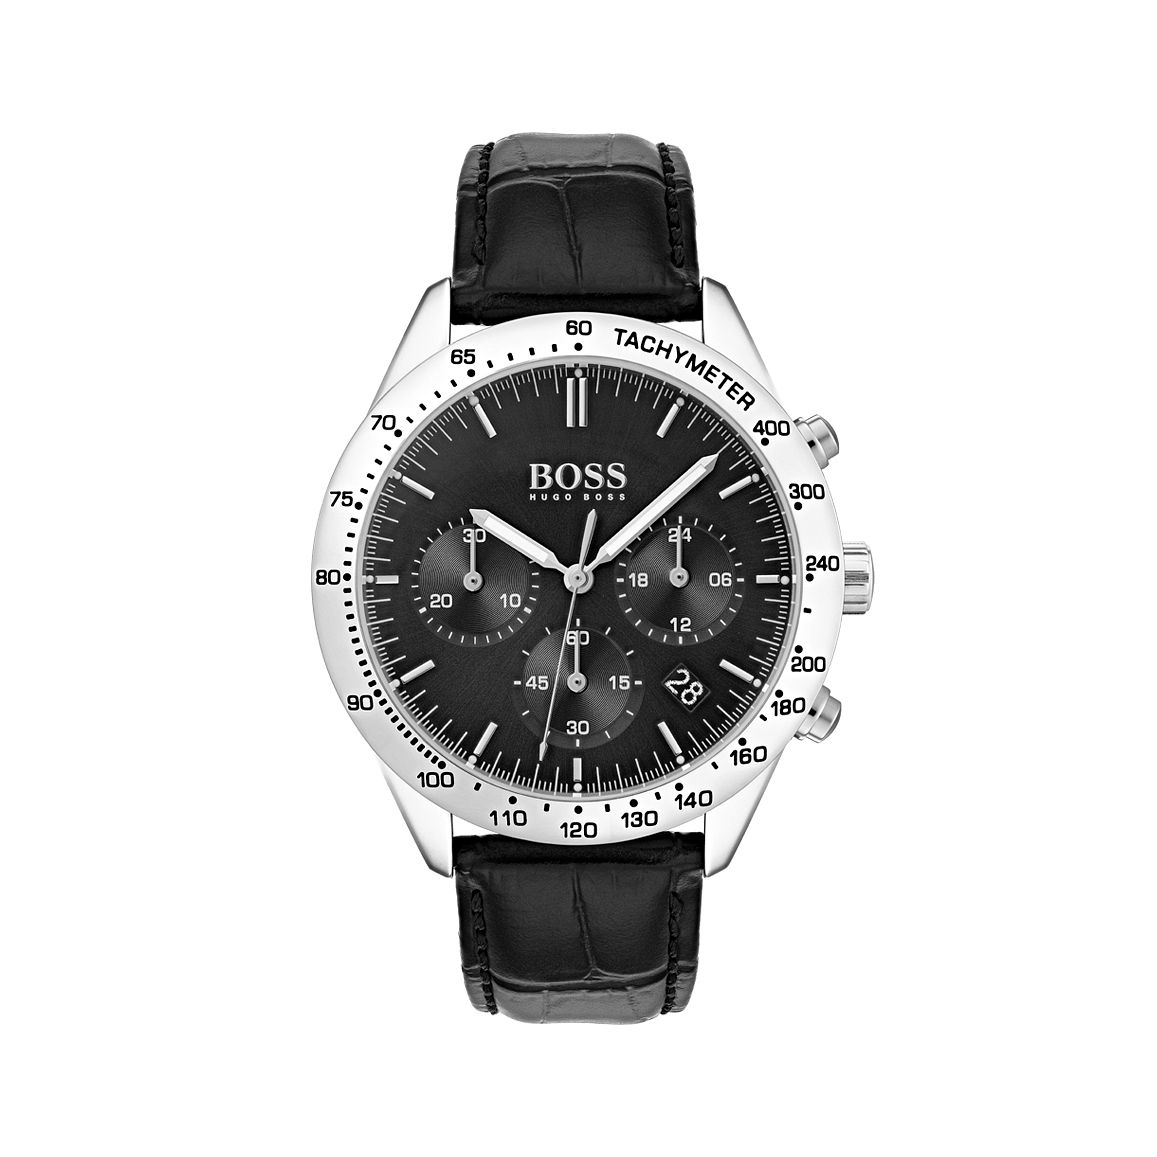 BOSS Talent Men's Black Leather Strap Watch - Product number 5876532